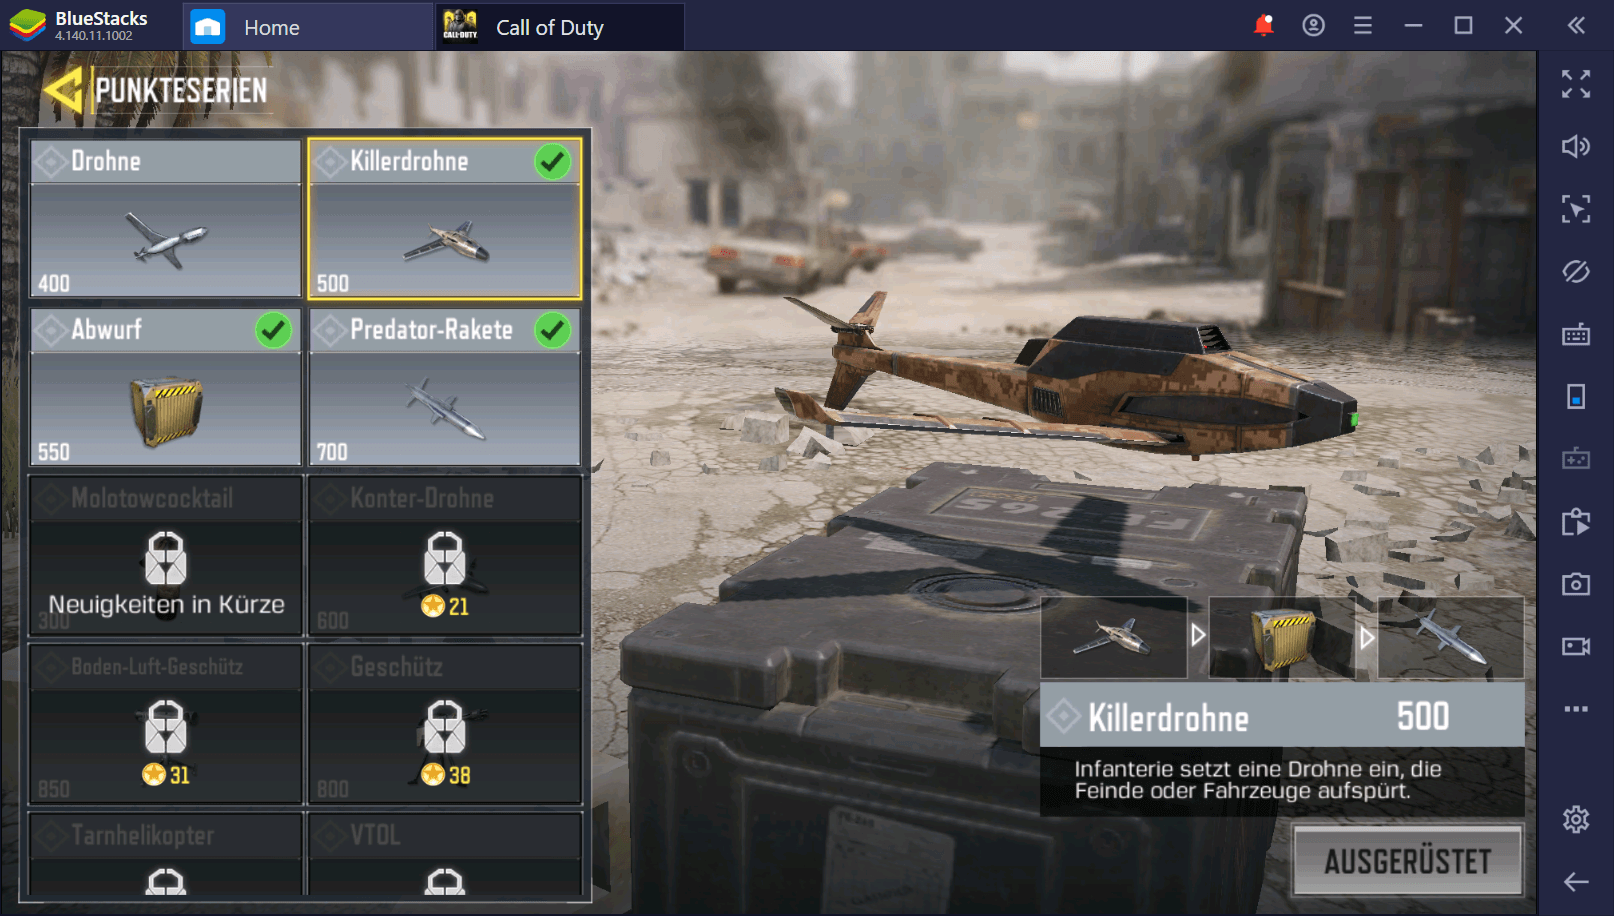 Call of Duty: Mobile auf dem PC - Protips und Tricks